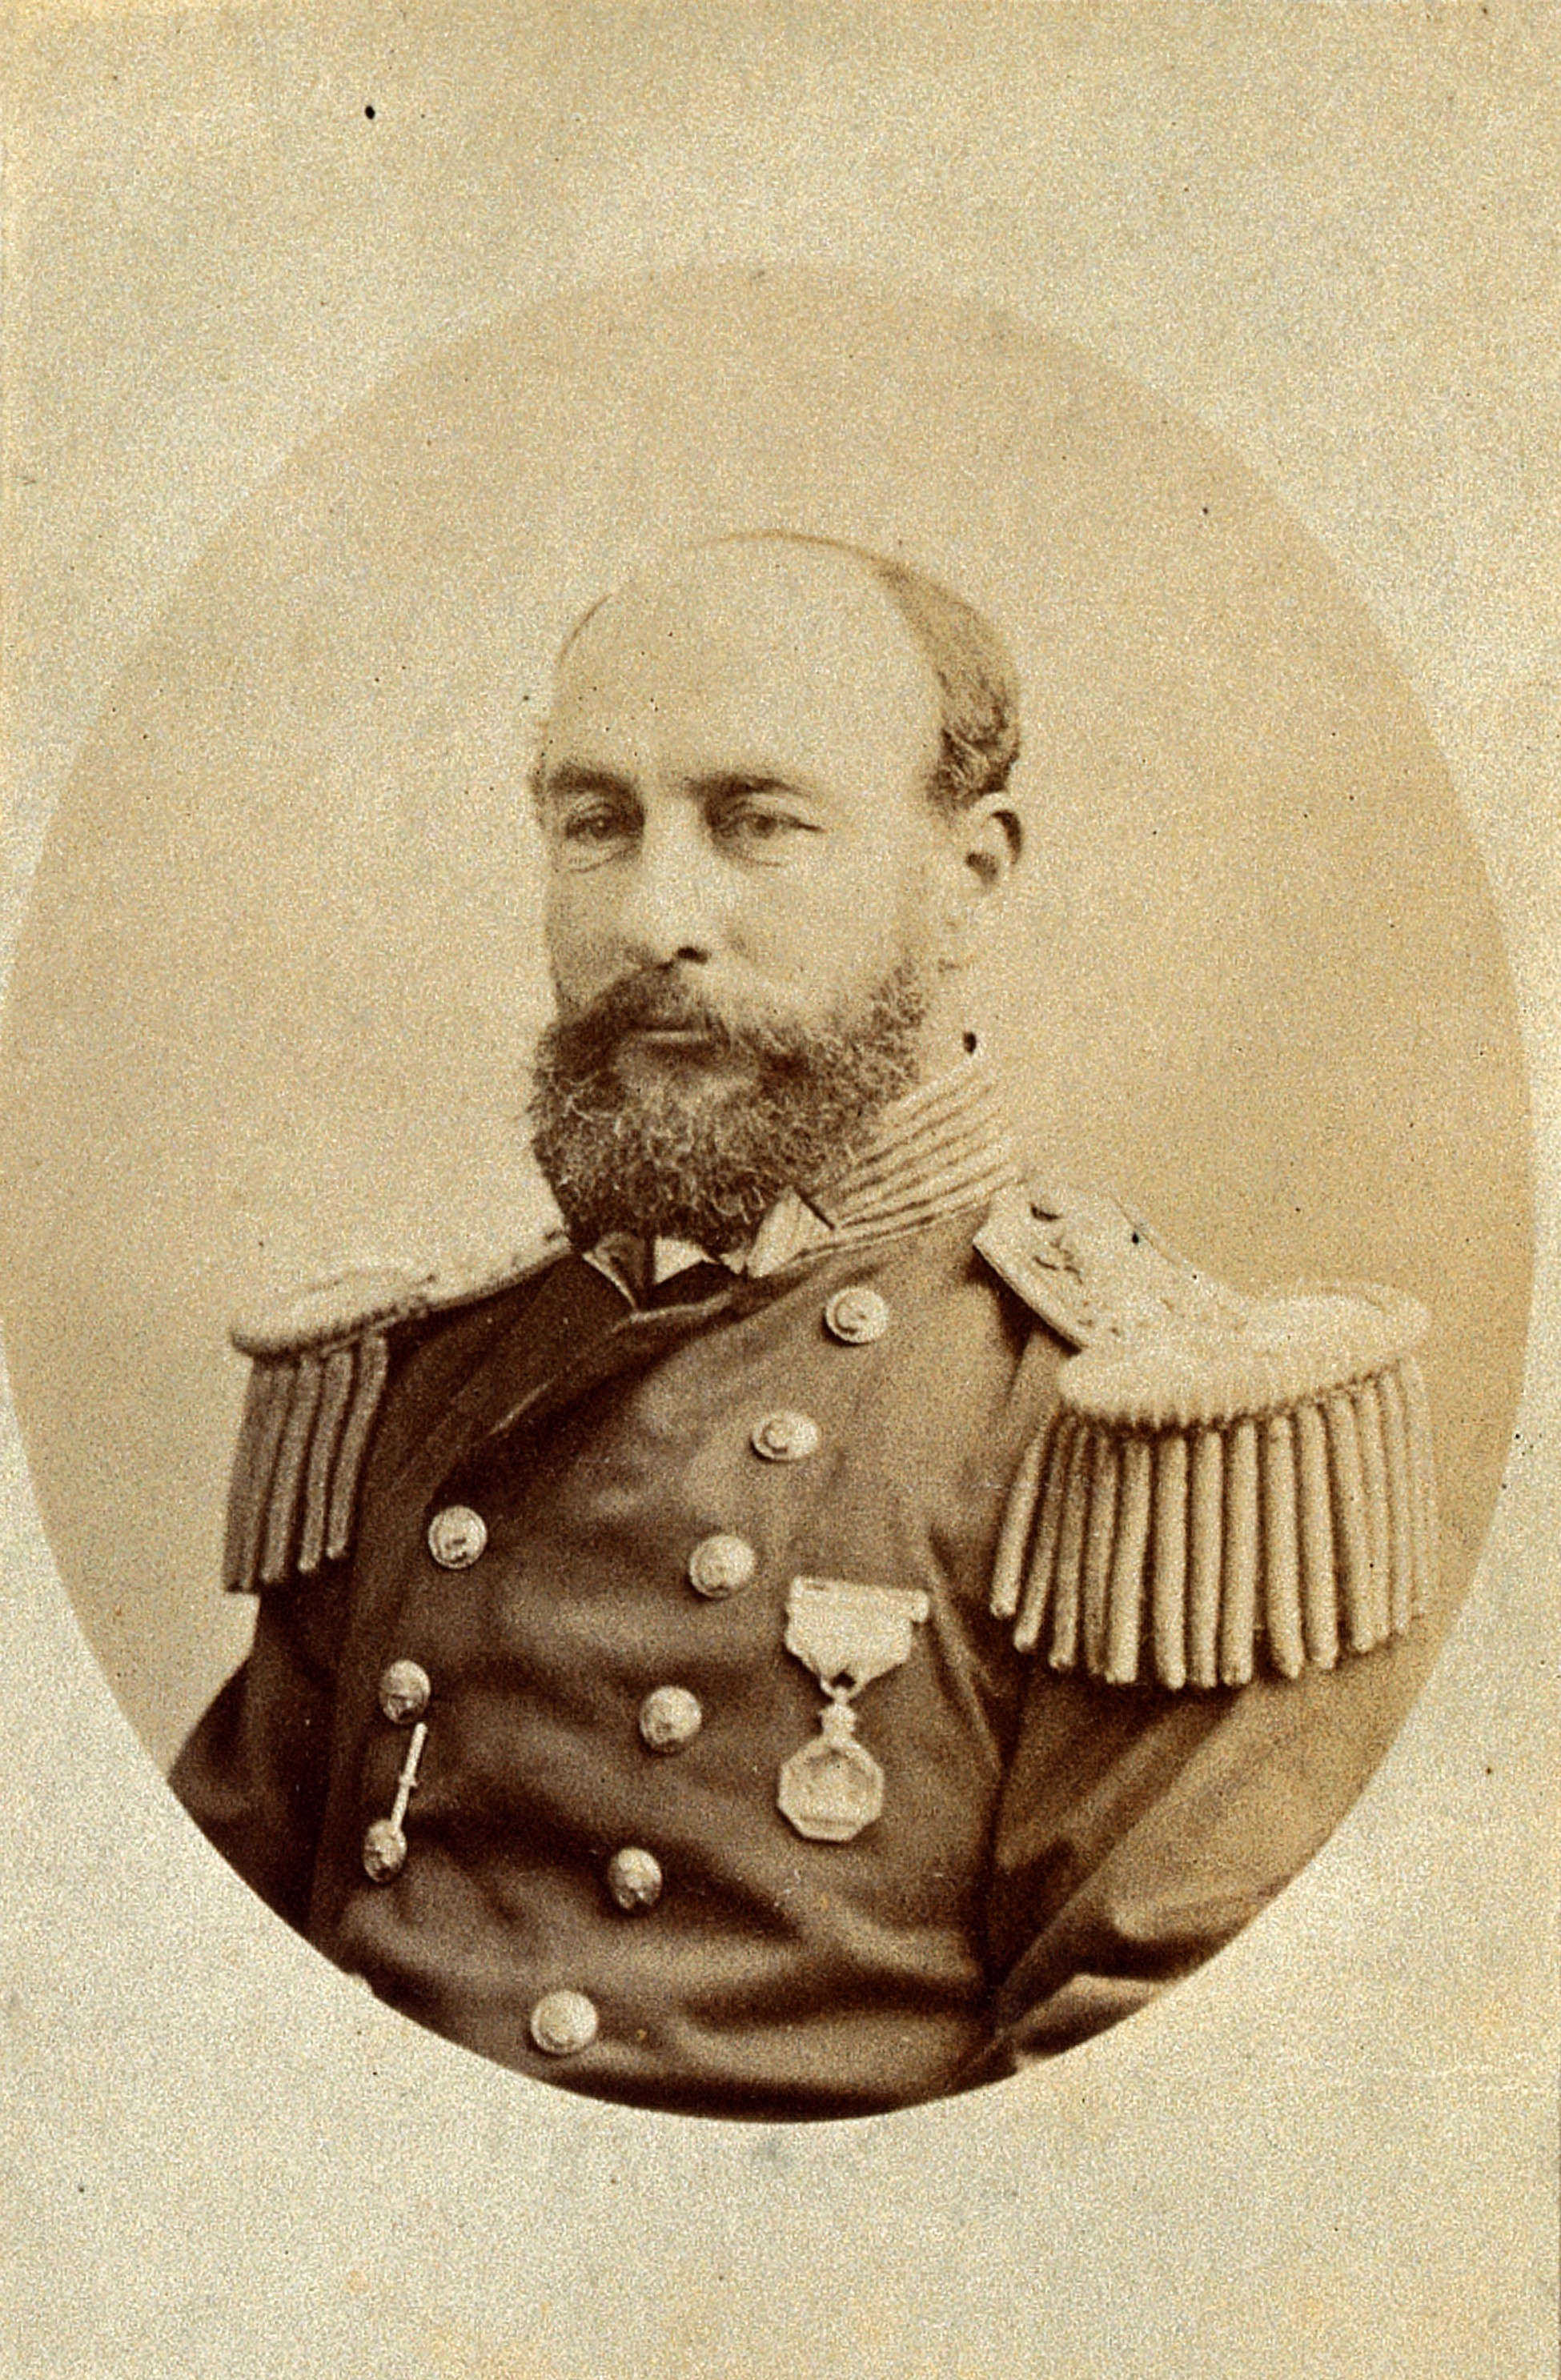 Sir George Strong Nares